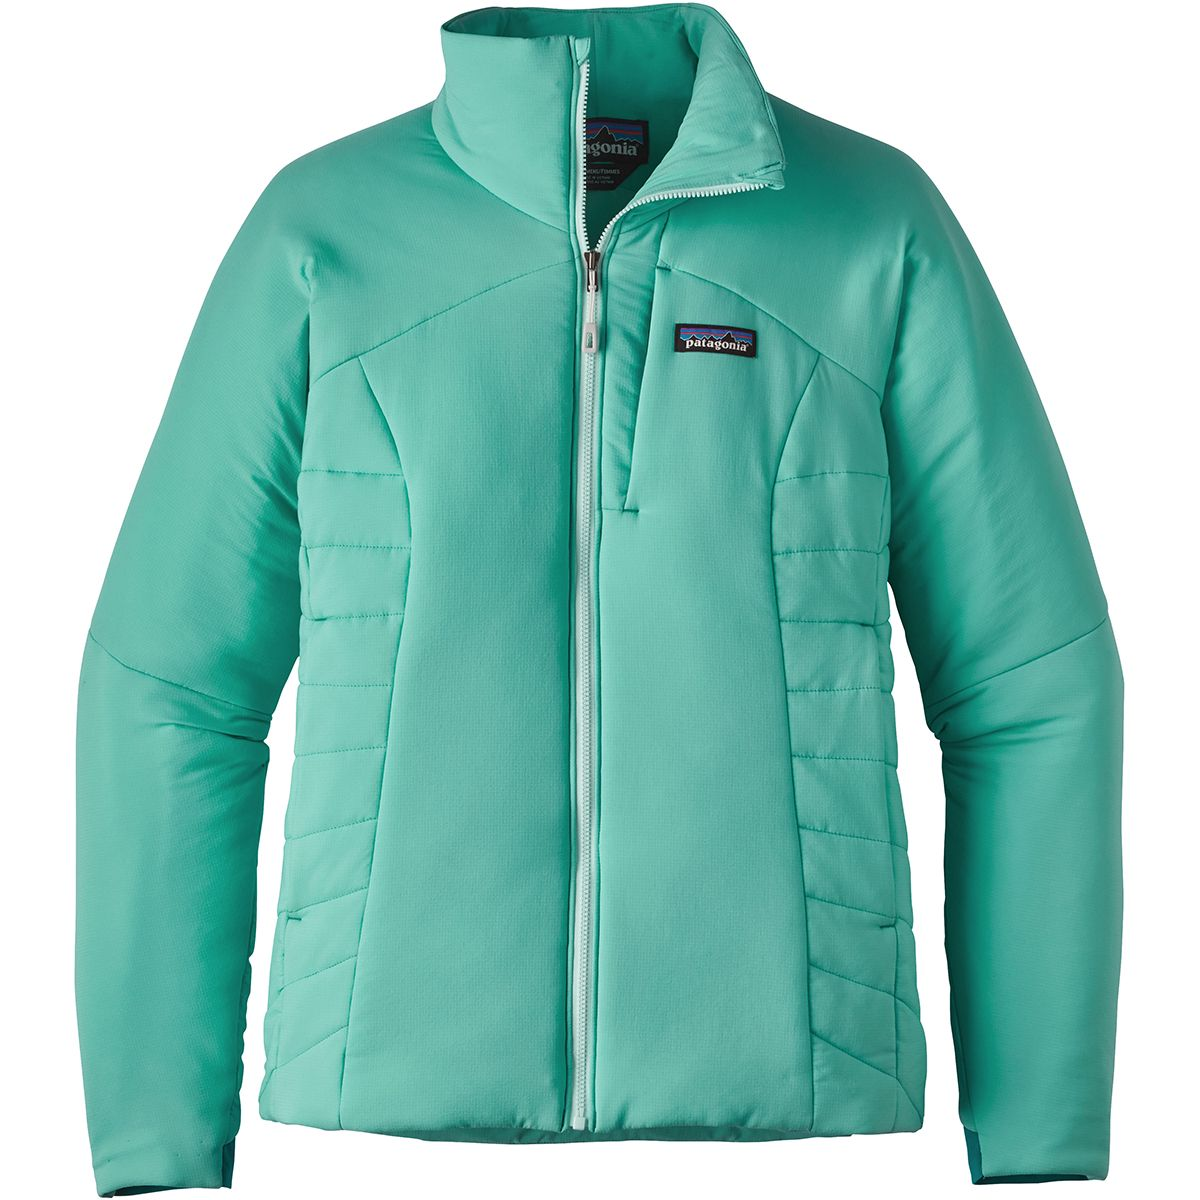 Patagonia Damen Nano-Air Jacke (Größe M, Blau) | Isolationsjacken > Damen